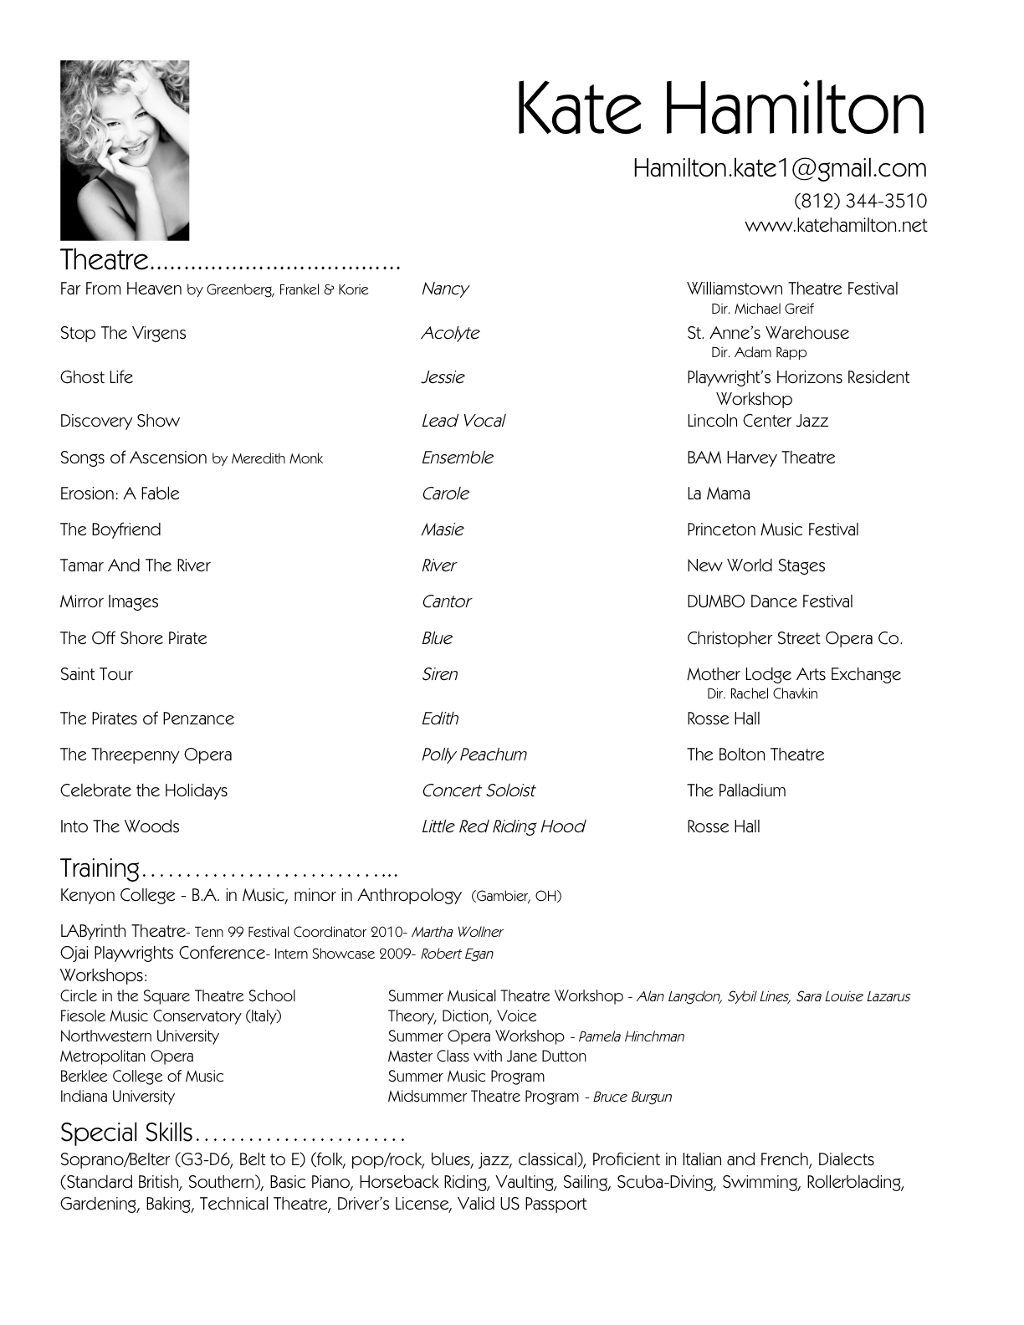 Resume Format For Advertising Agency Http Www Resumecareer